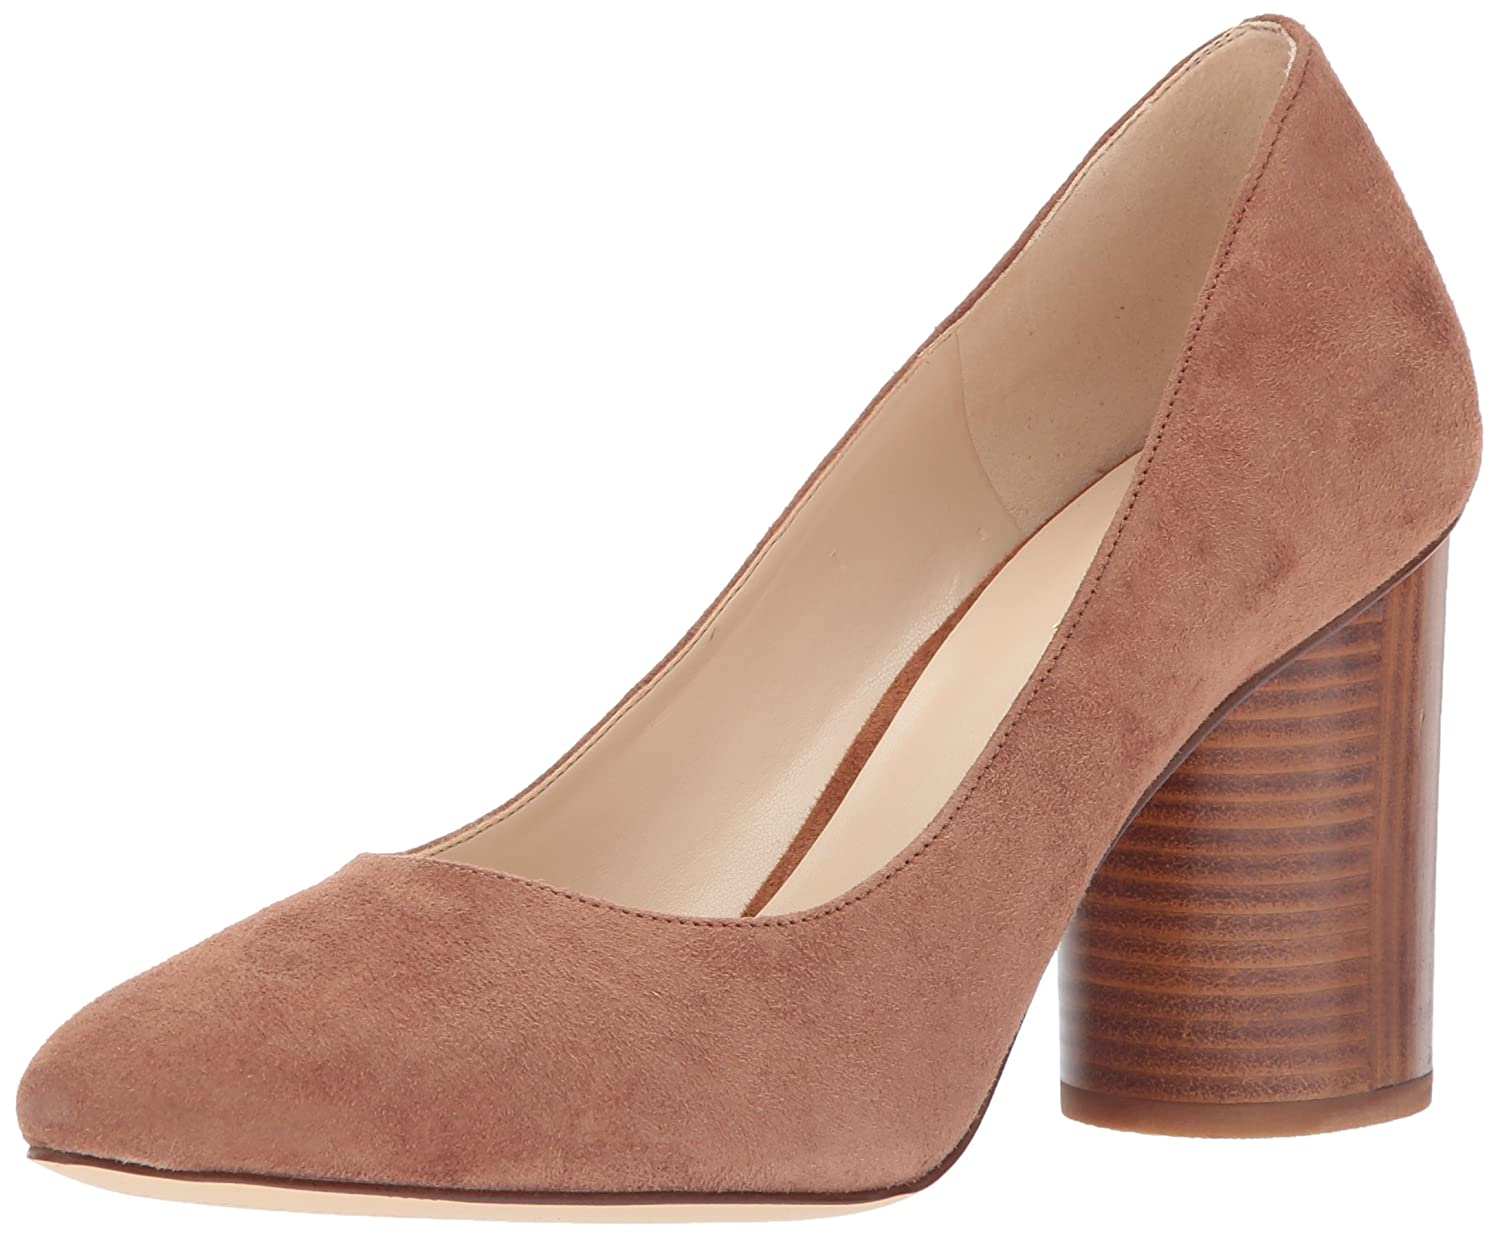 Nine West Women's Cardya Leather Pump B06X3VH21T 9 B(M) US|Dark Natural Suede